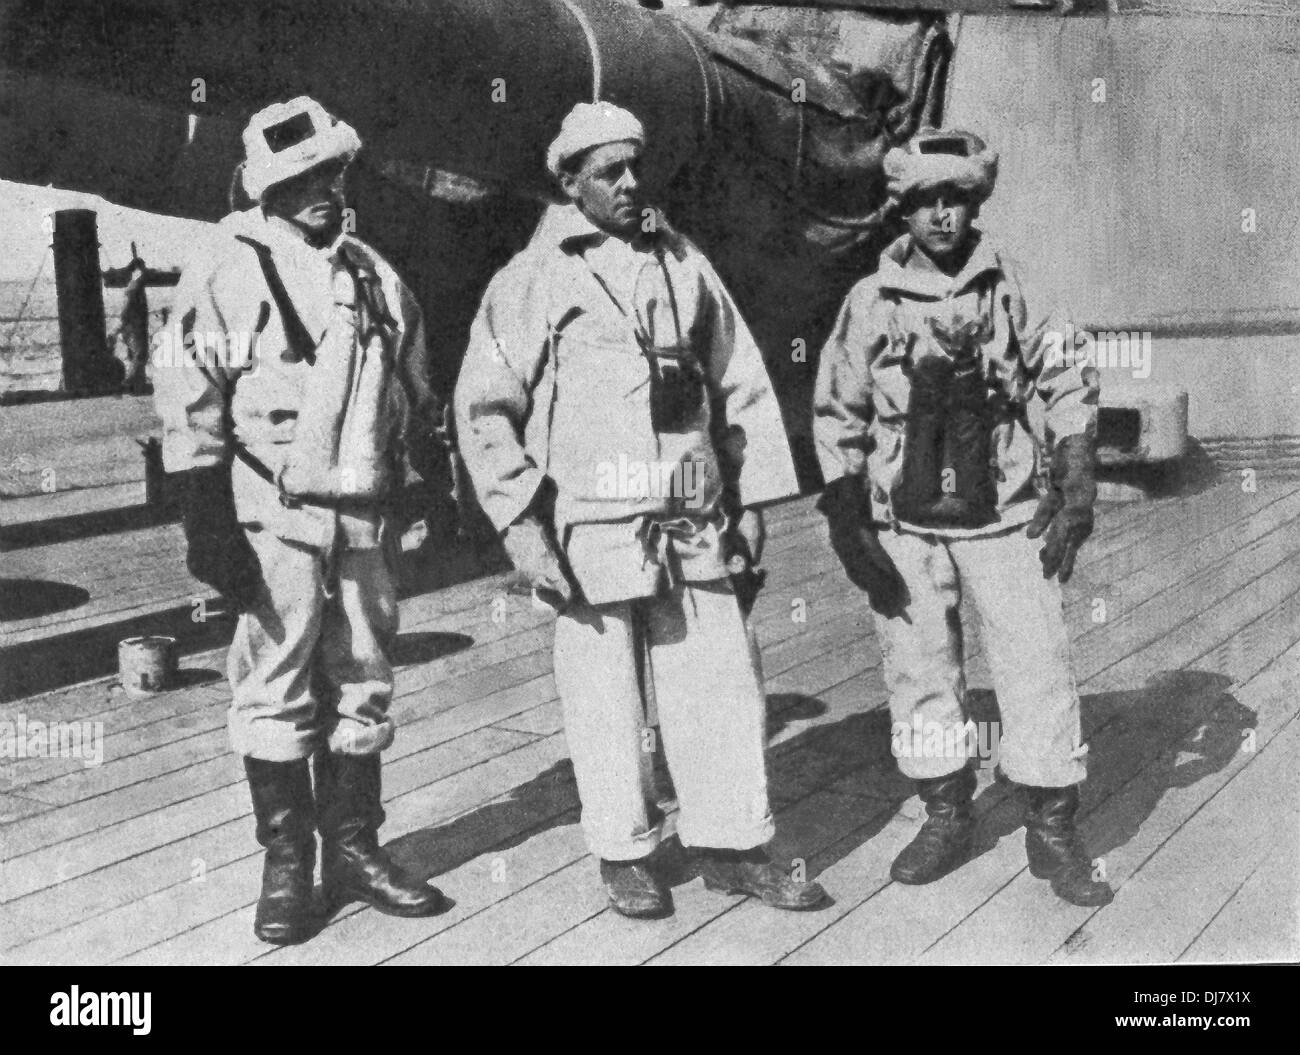 This photo shows British Commander Chetwode (middle) with British military personnel in the North Sea during World War I. - Stock Image